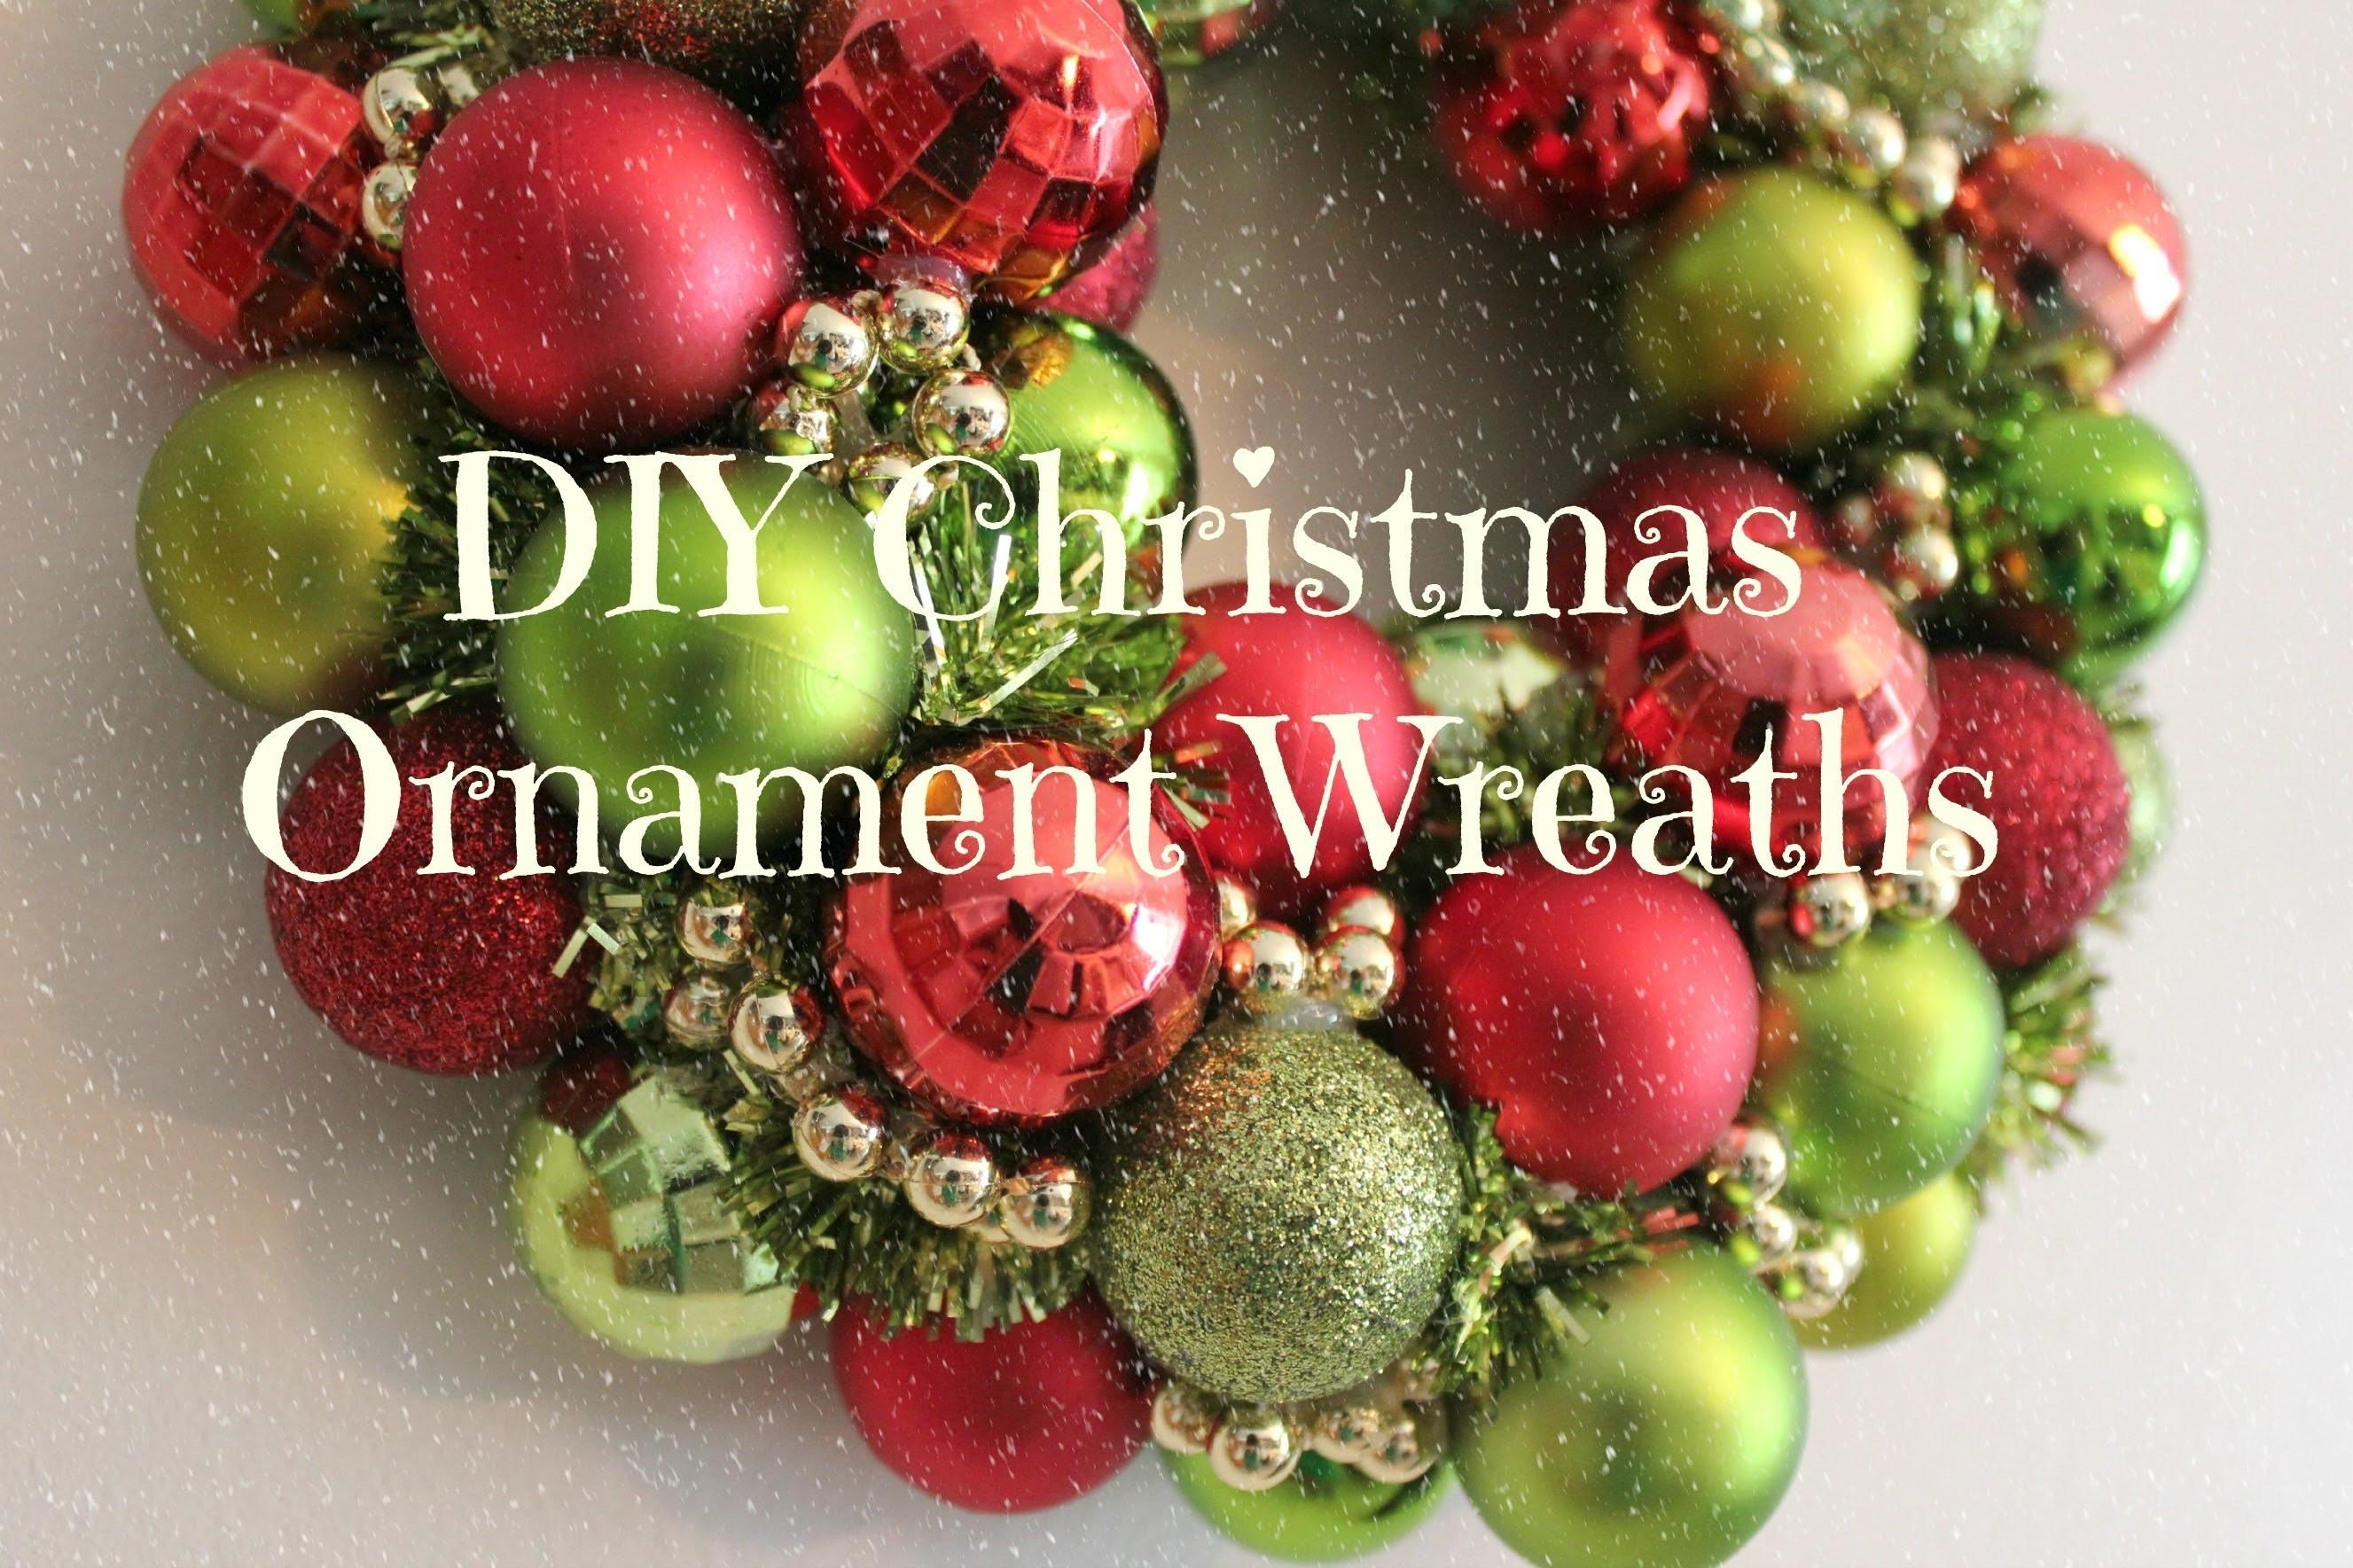 Diy Christmas Ornament Wreath Tutorial